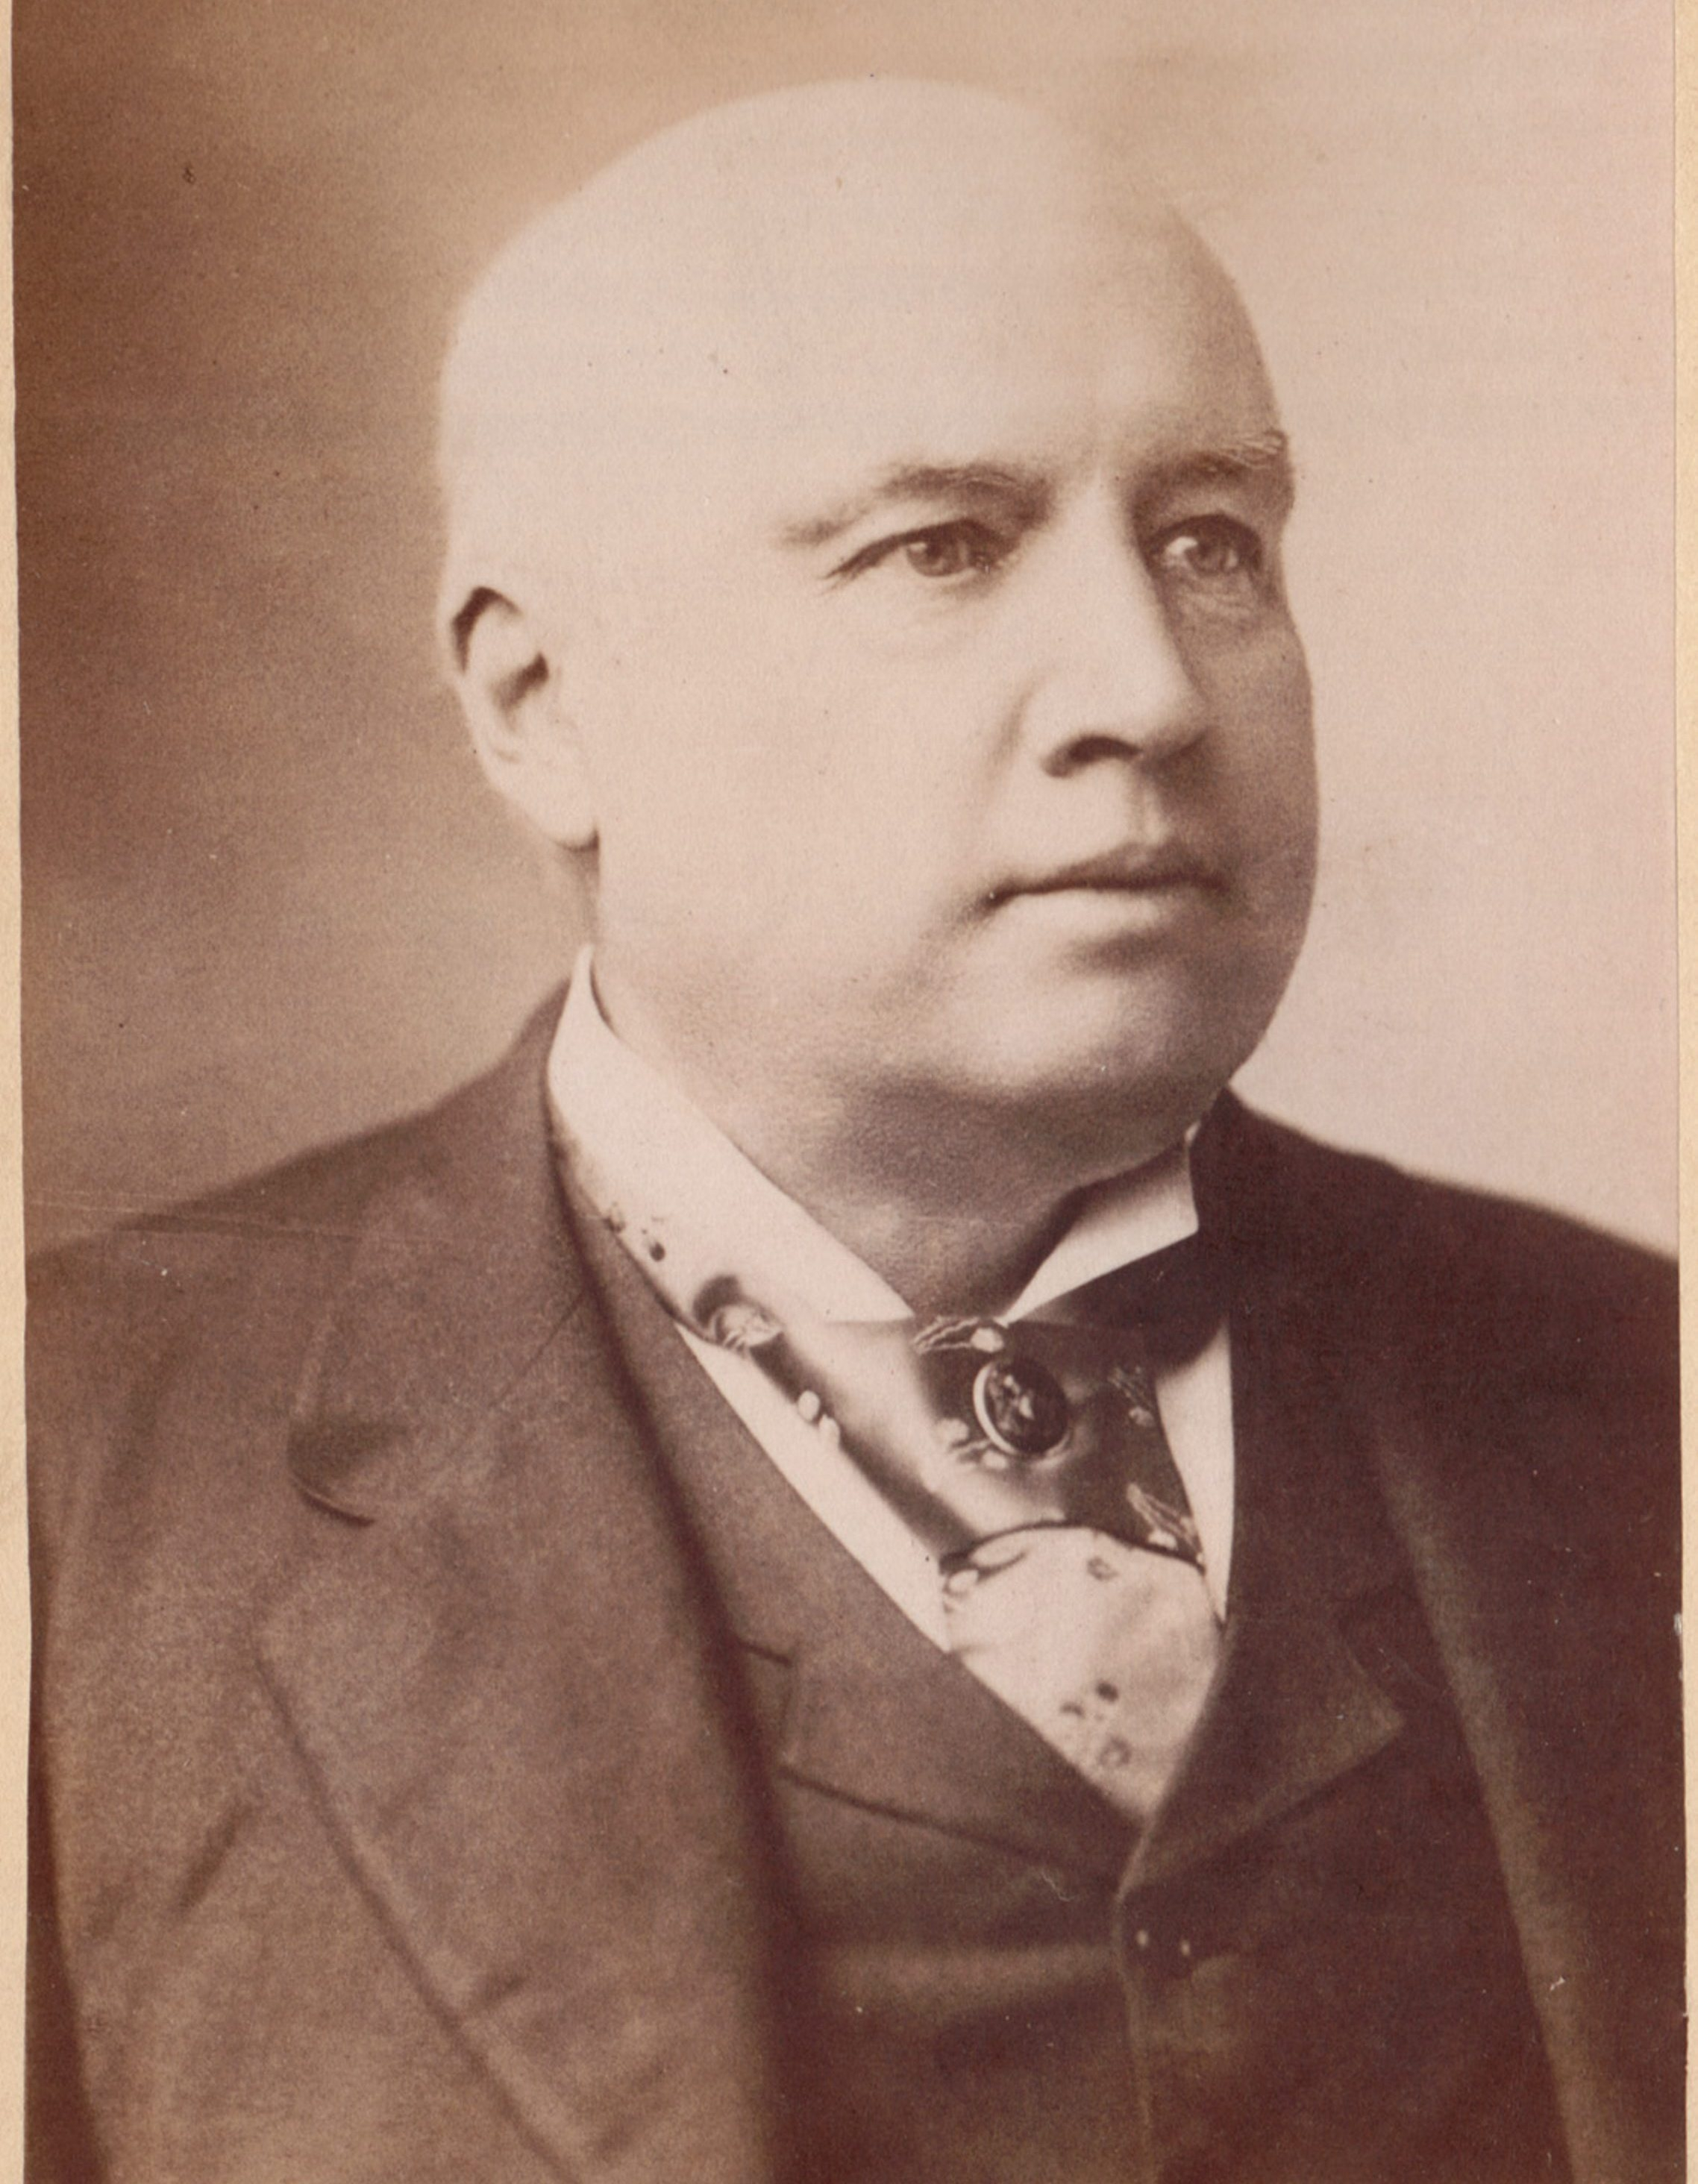 Gifted orator Robert Ingersoll was much in demand and gave the eulogy for poet Walt Whitman.